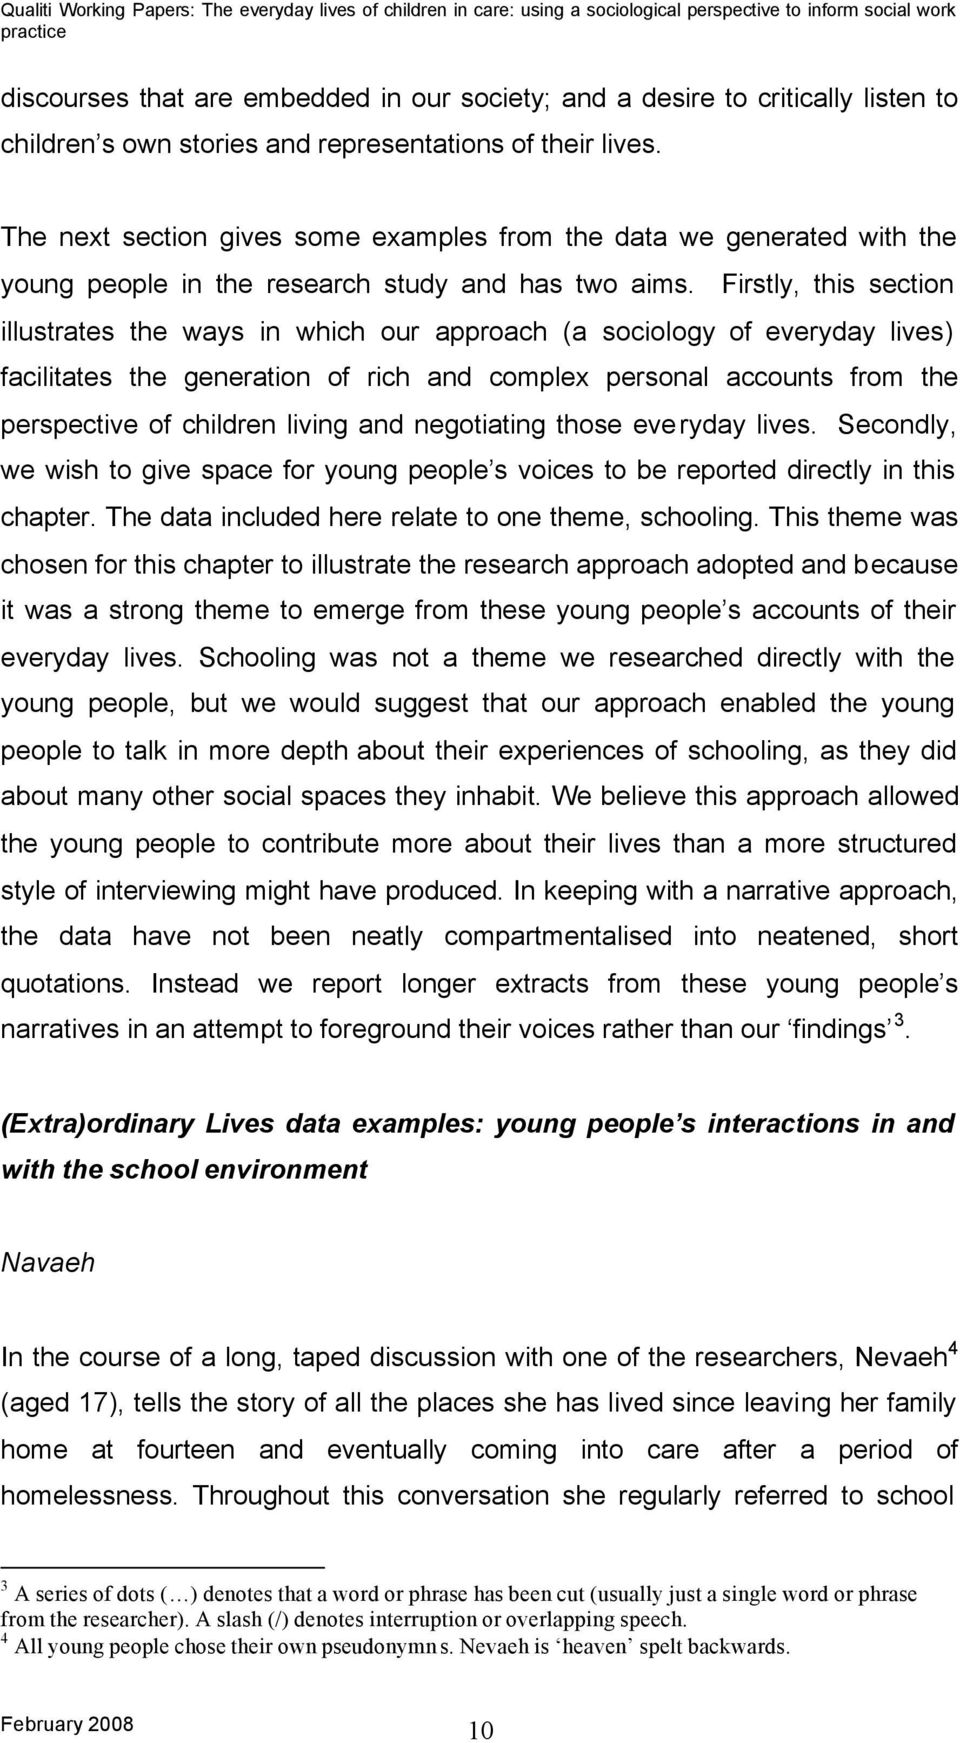 Firstly, this section illustrates the ways in which our approach (a sociology of everyday lives) facilitates the generation of rich and complex personal accounts from the perspective of children